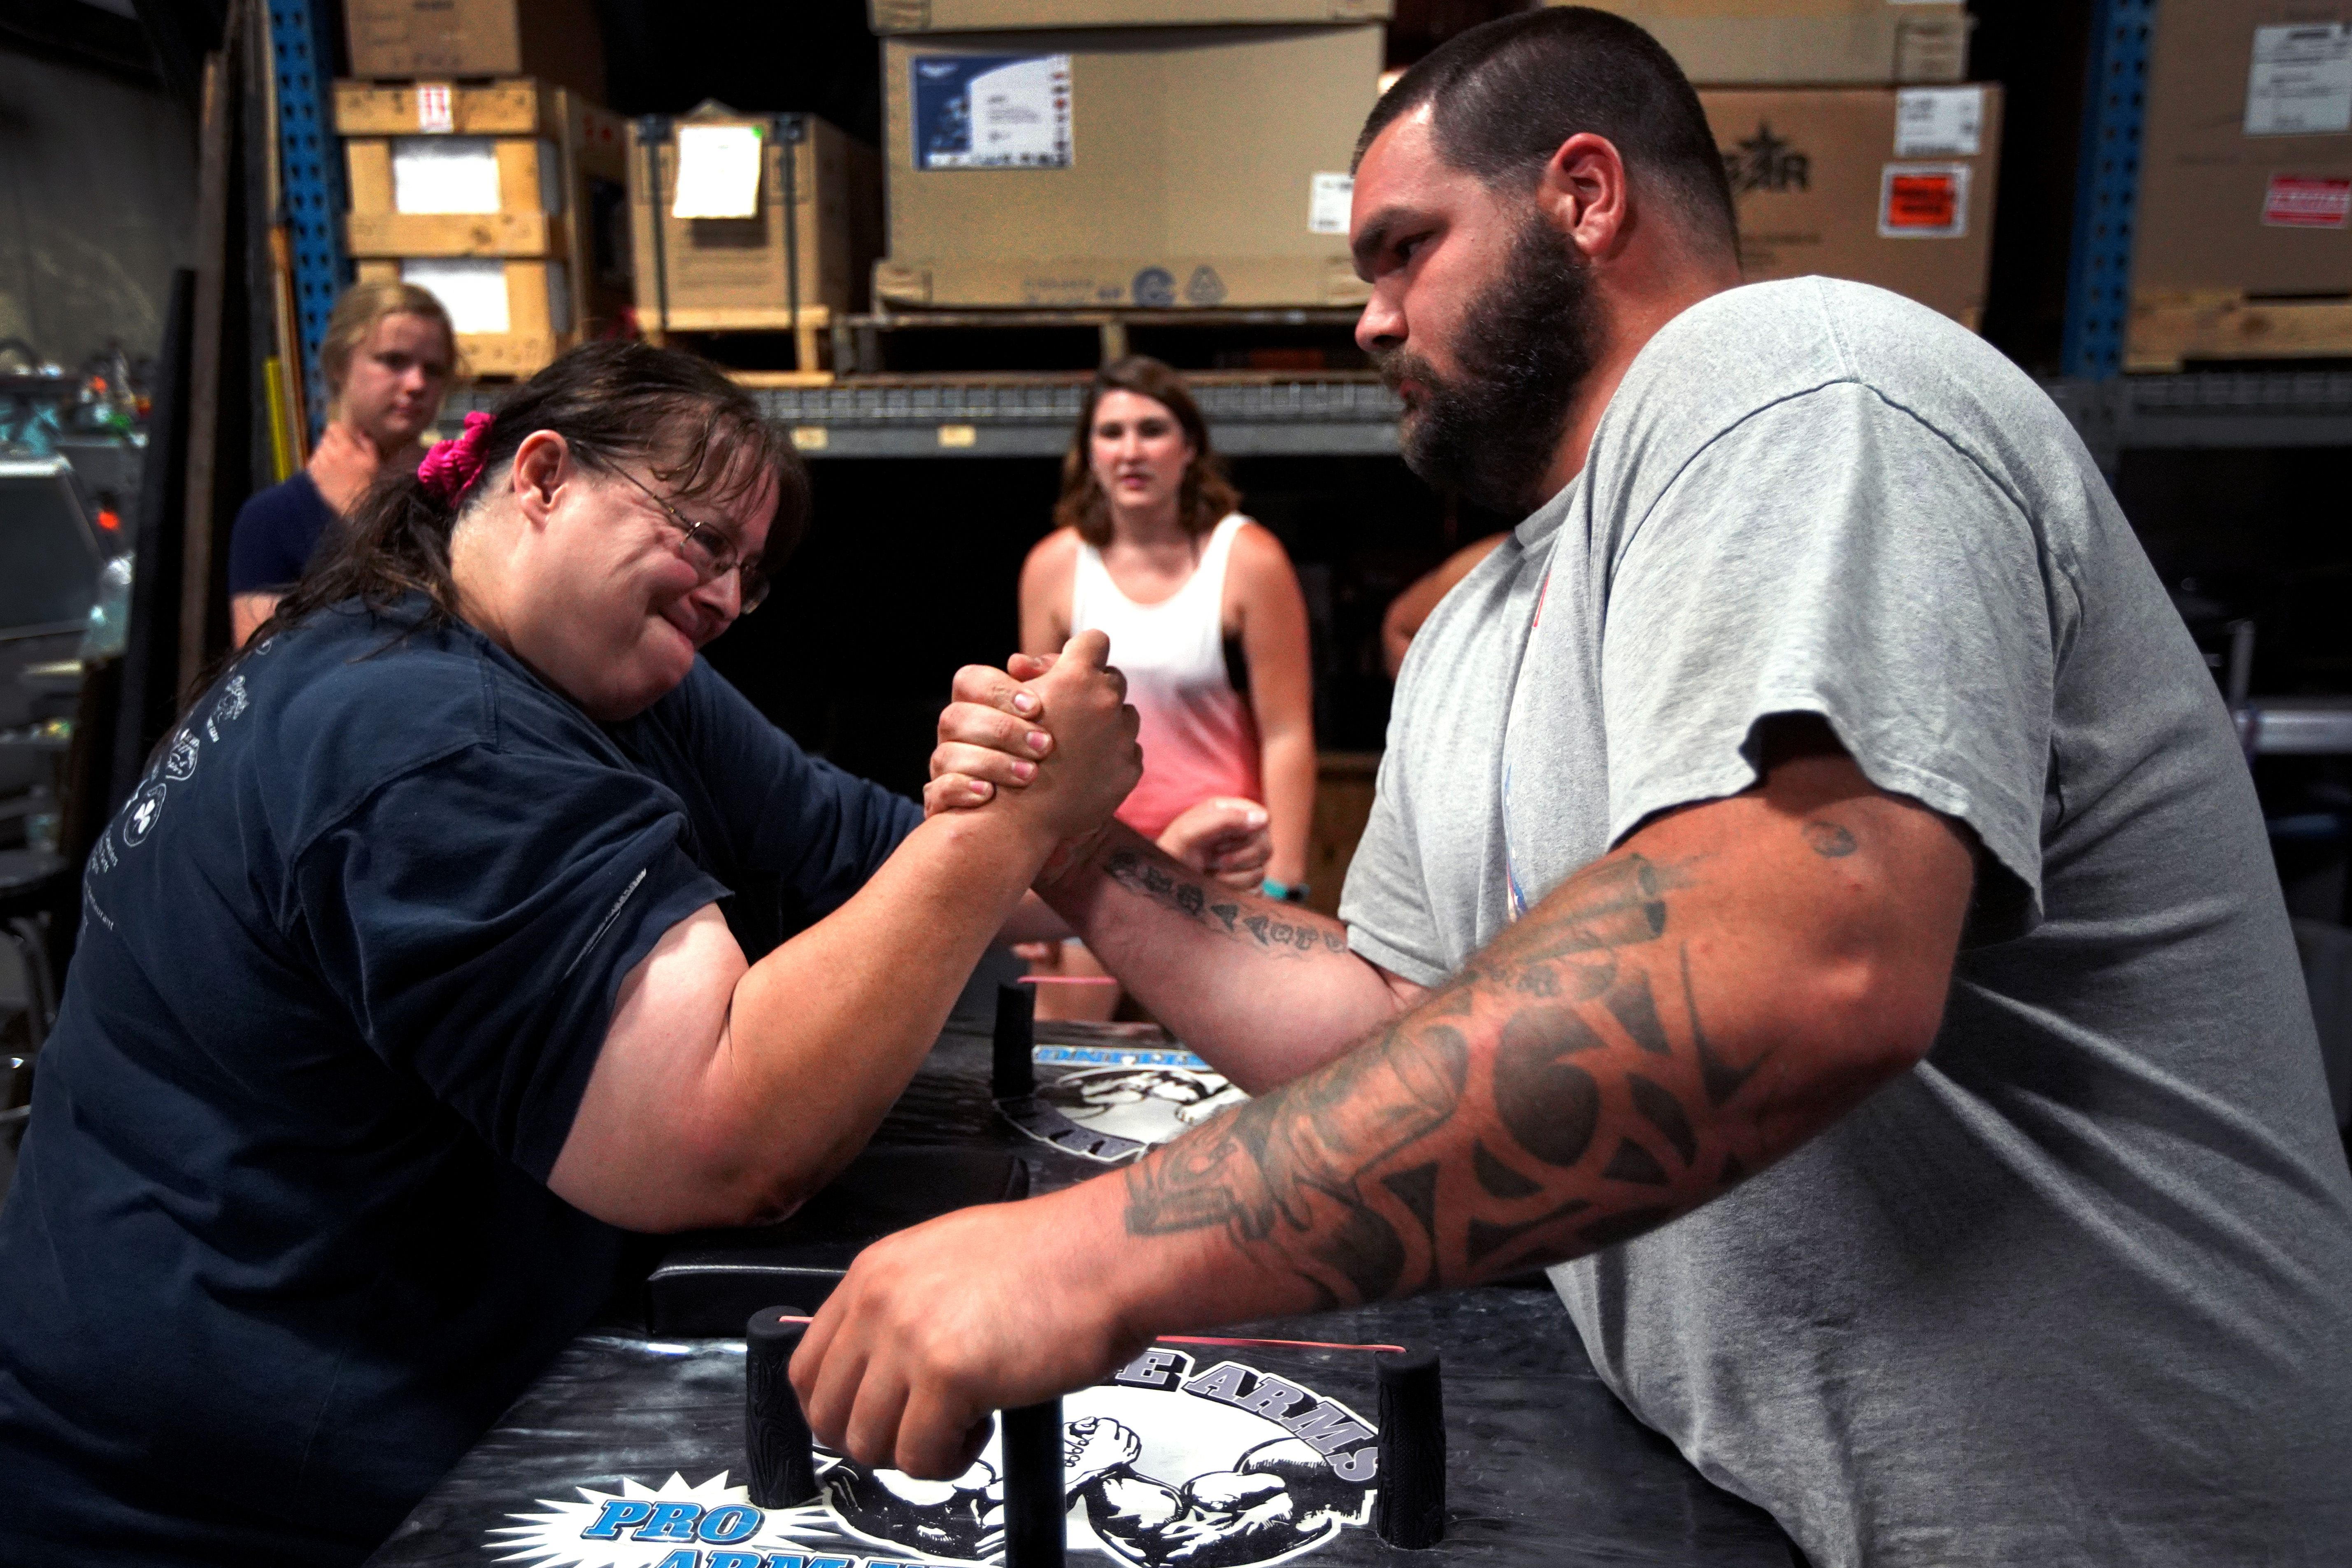 N H Woman Beats The Odds In Arm Wrestling The Boston Globe